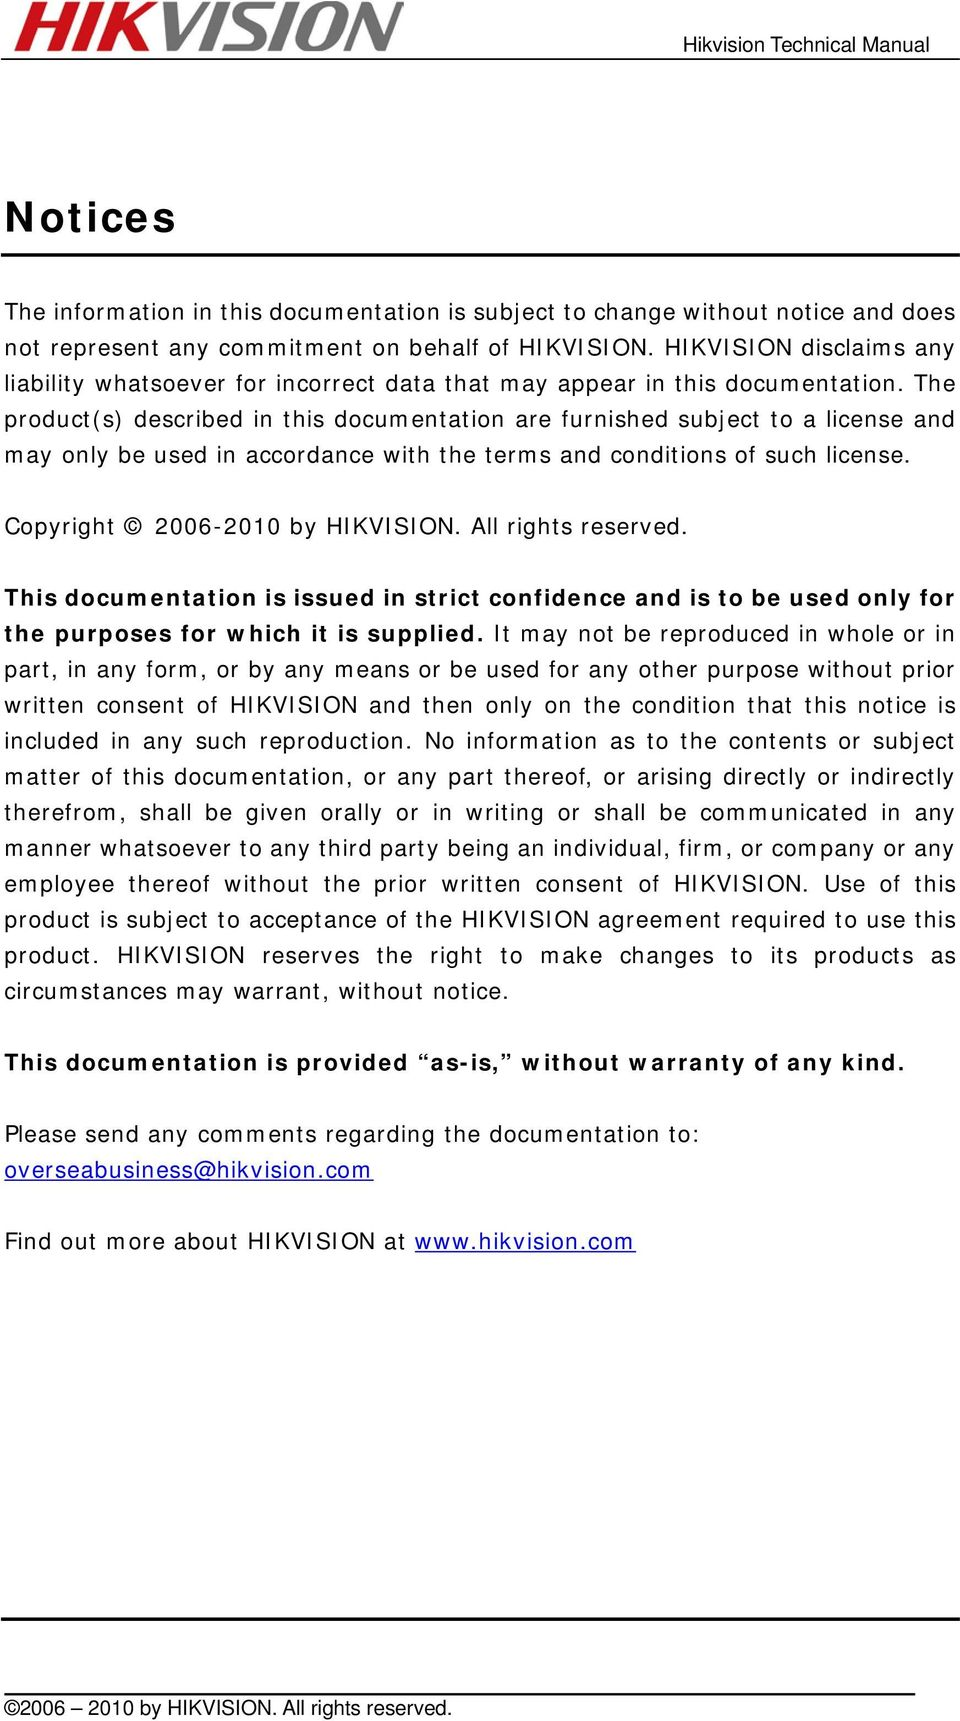 The product(s) described in this documentation are furnished subject to a license and may only be used in accordance with the terms and conditions of such license. Copyright 2006-2010 by HIKVISION.